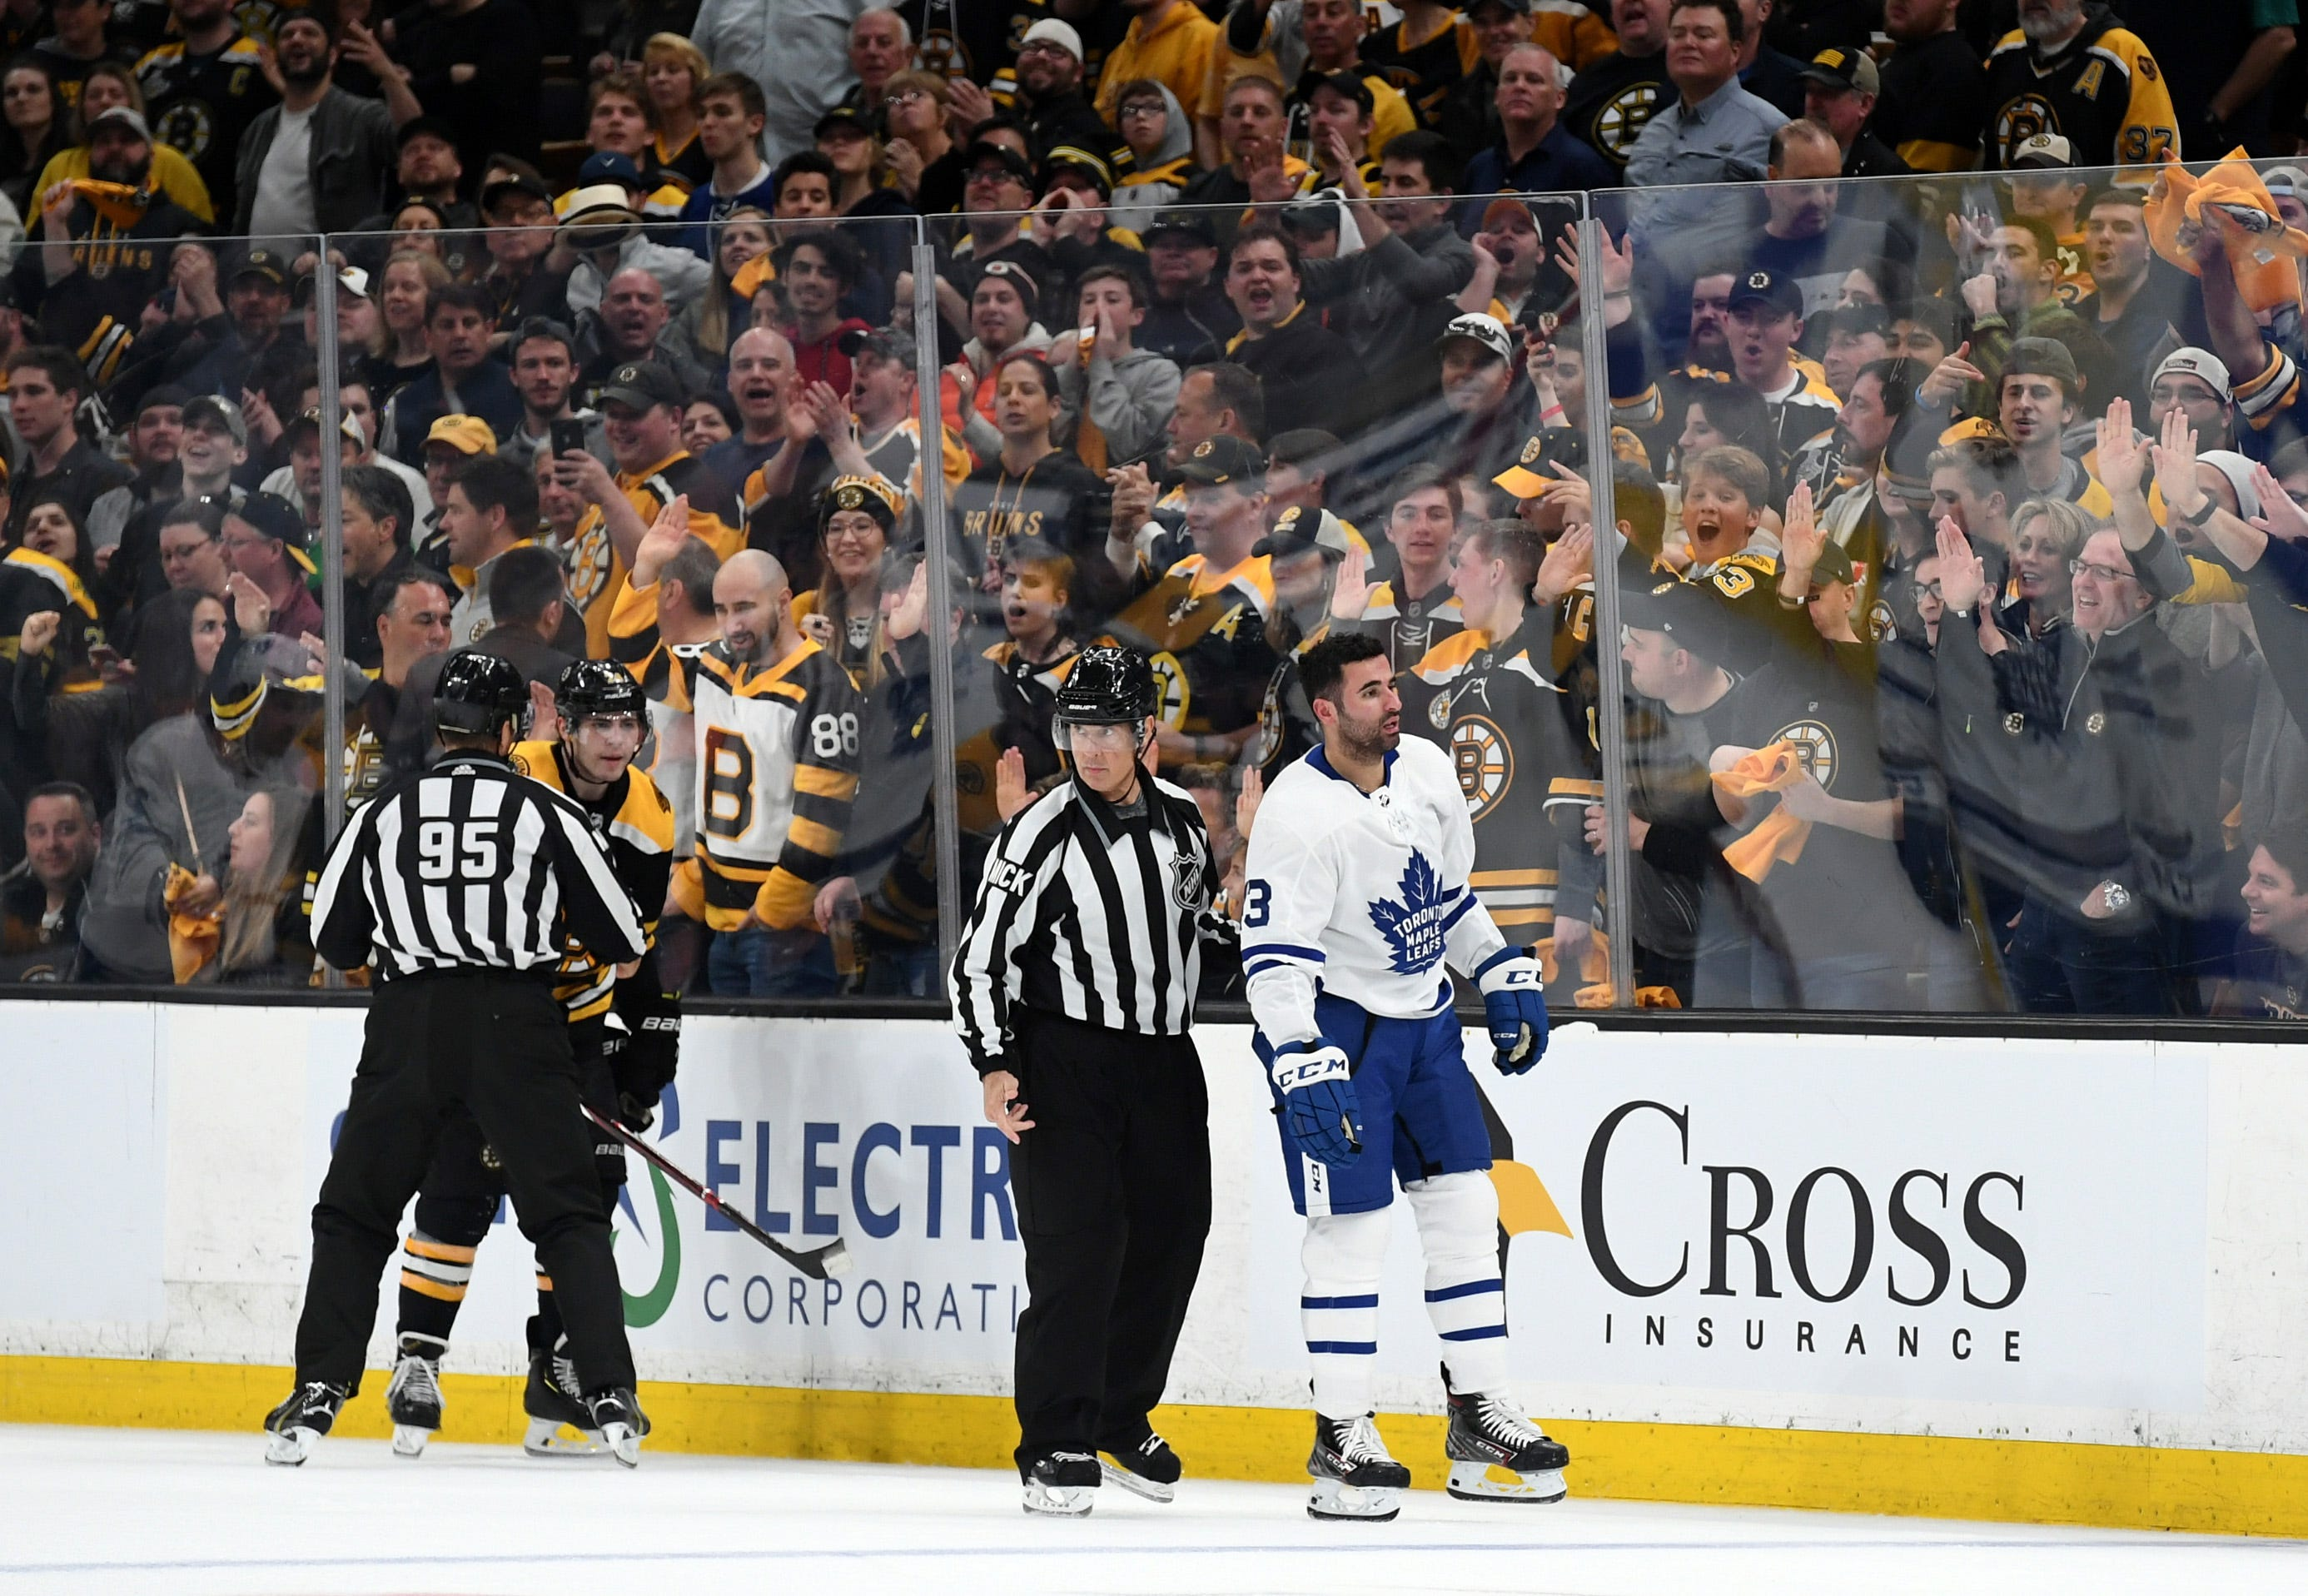 Maple Leafs' Nazem Kadri suspended for remainder of first round vs. Bruins for cross-check